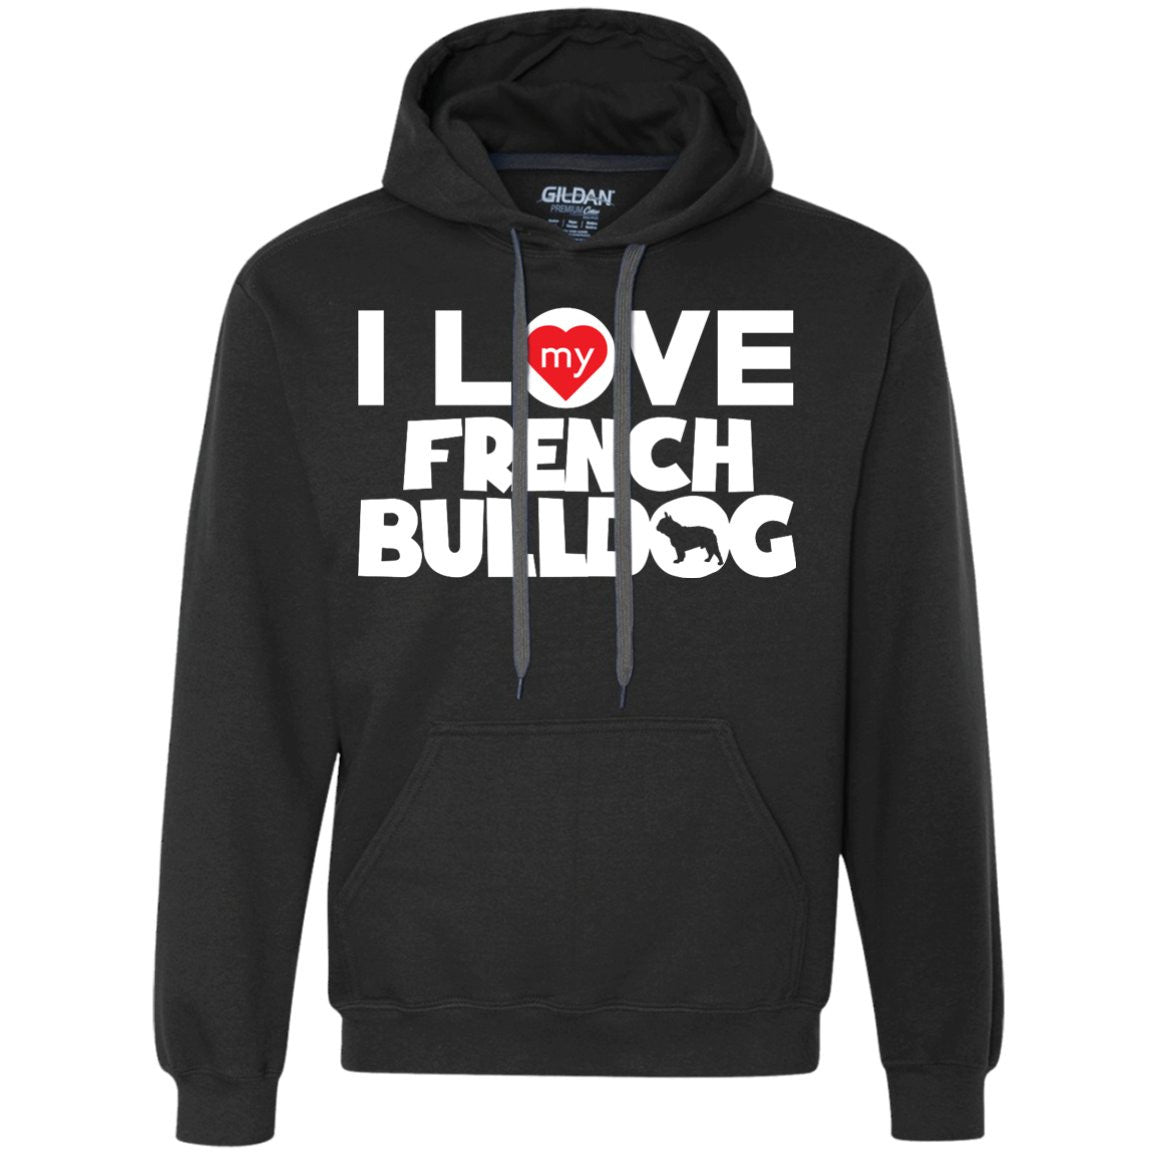 I Love My French Bulldog - Heavyweight Pullover Fleece Sweatshirt